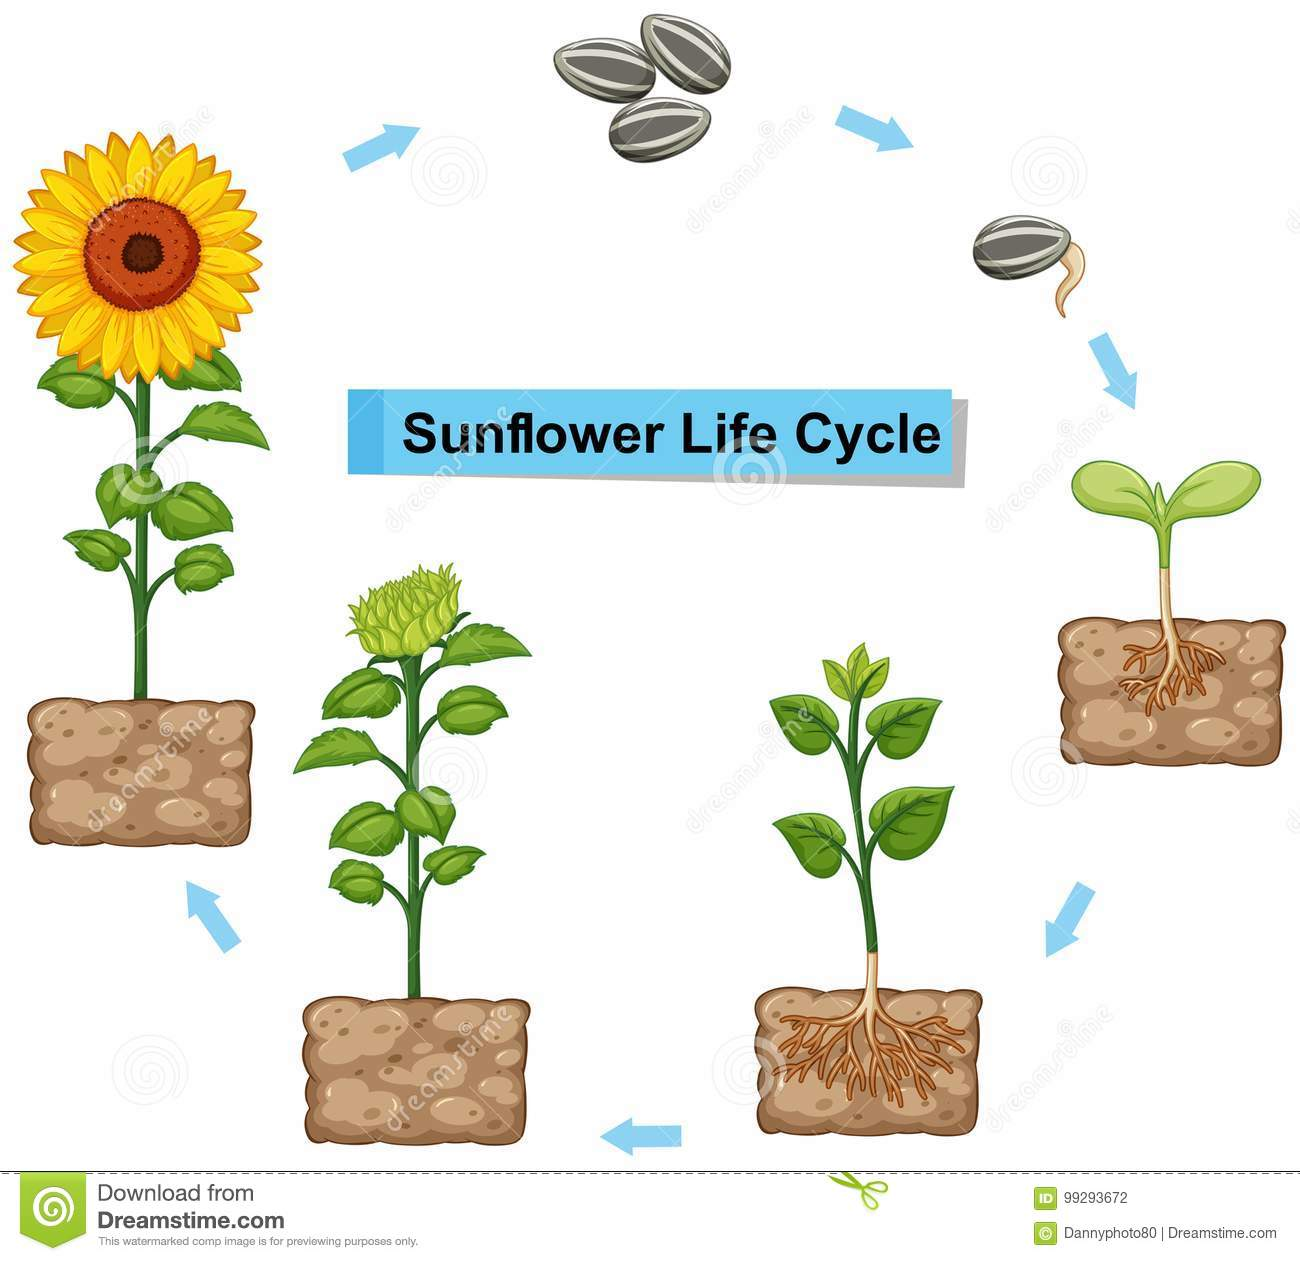 hight resolution of diagram showing life cycle of sunflower